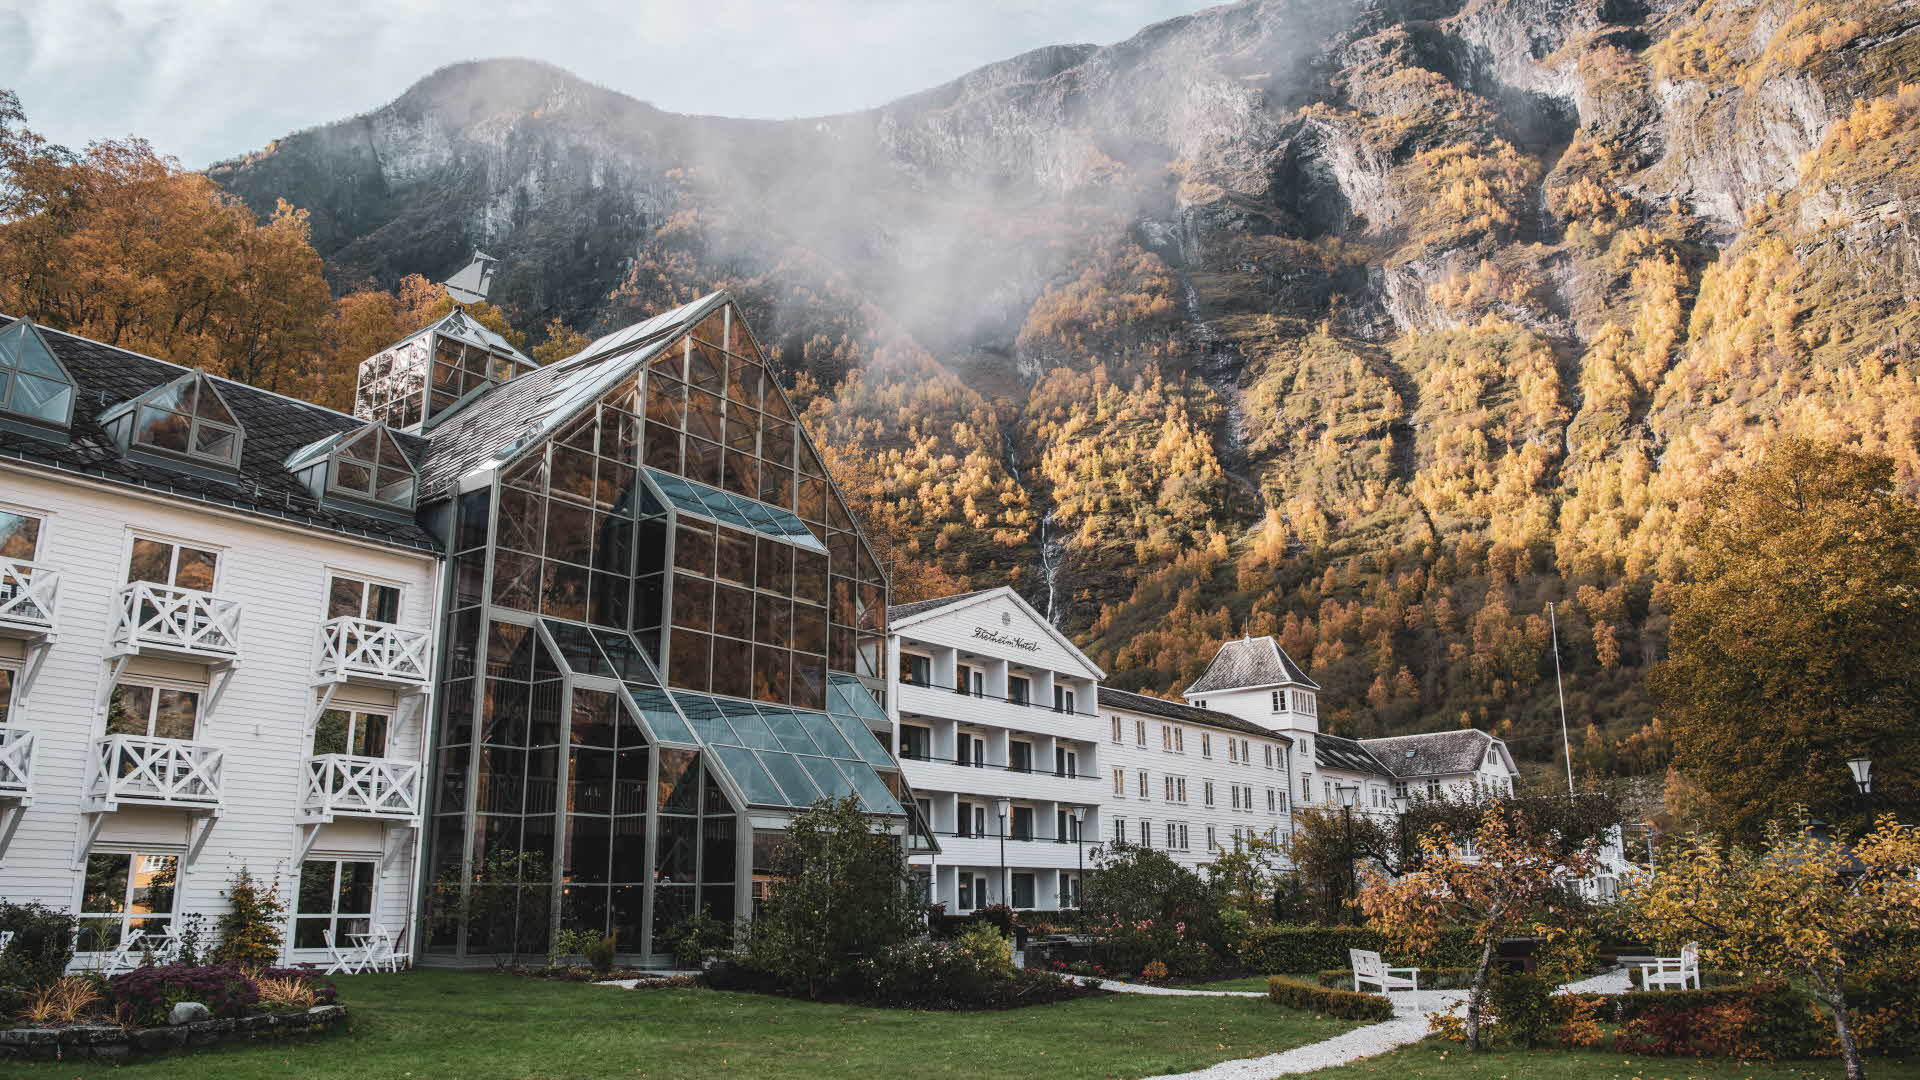 Exterior of Fretheim Hotel in autumn with the steep mountains towering behind